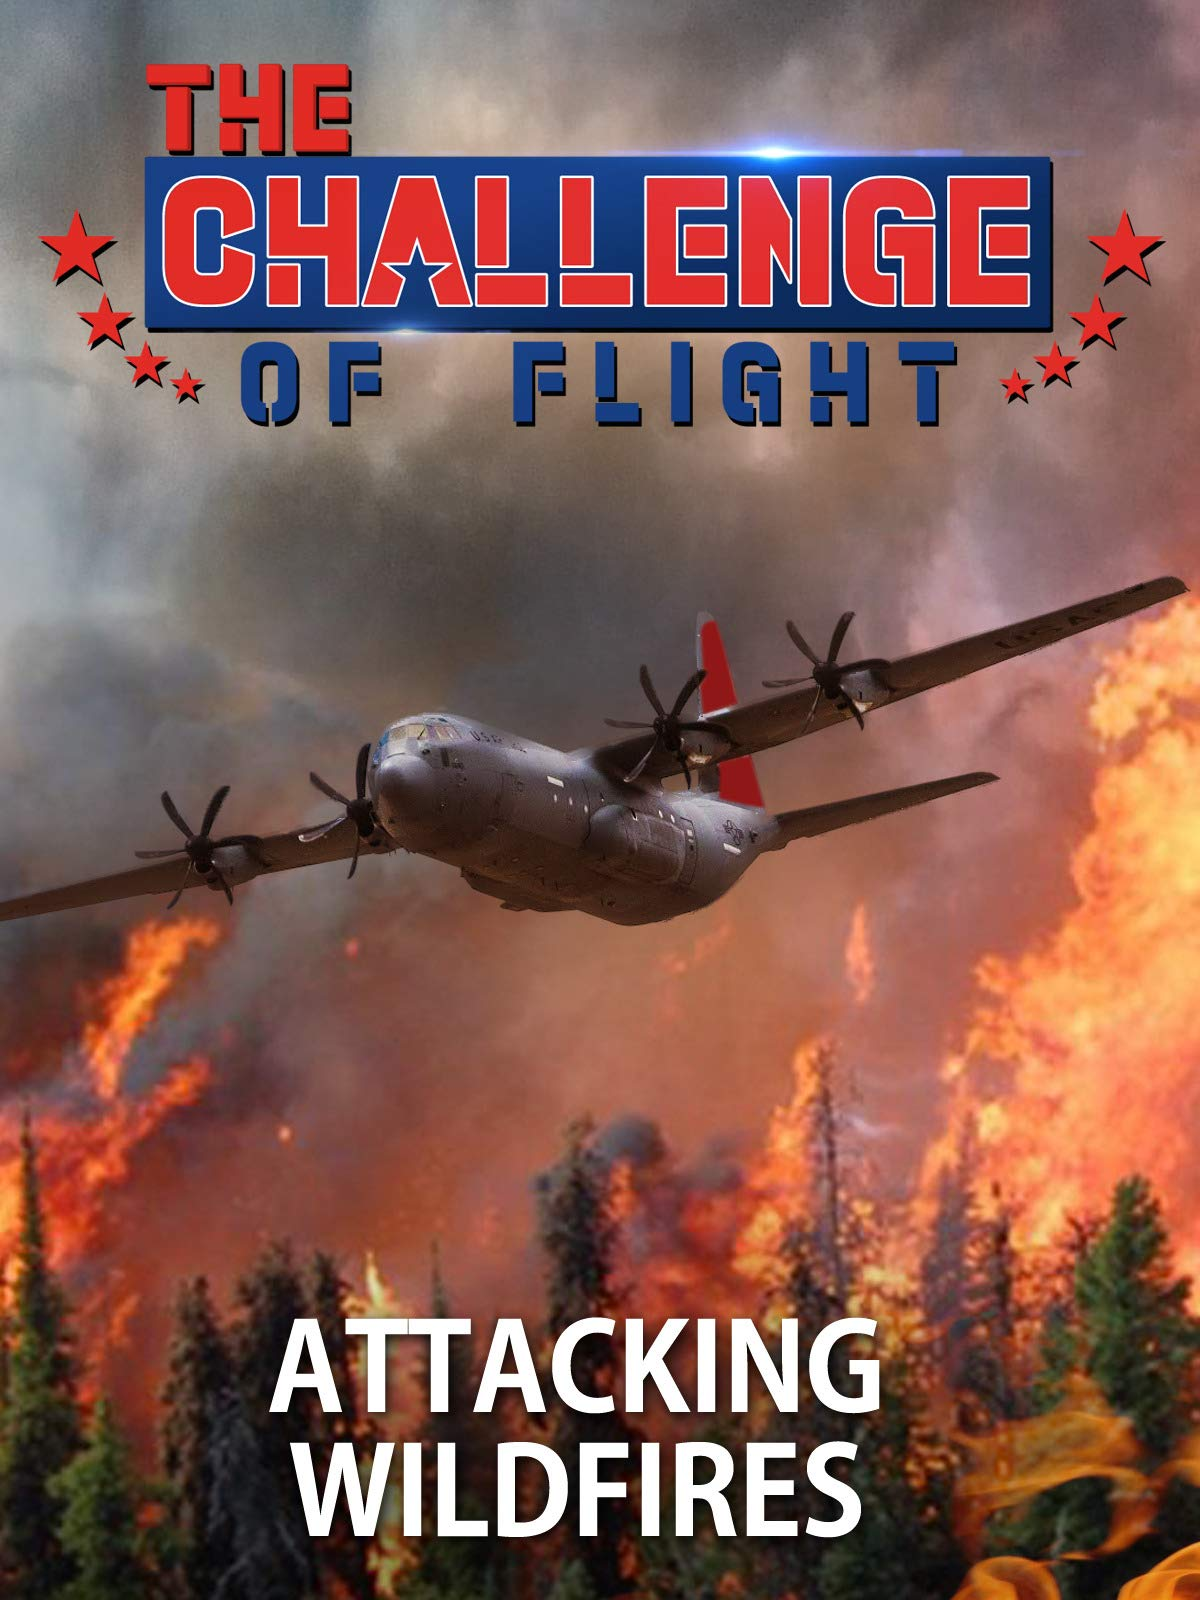 The Challenge of Flight - Attacking Wildfires